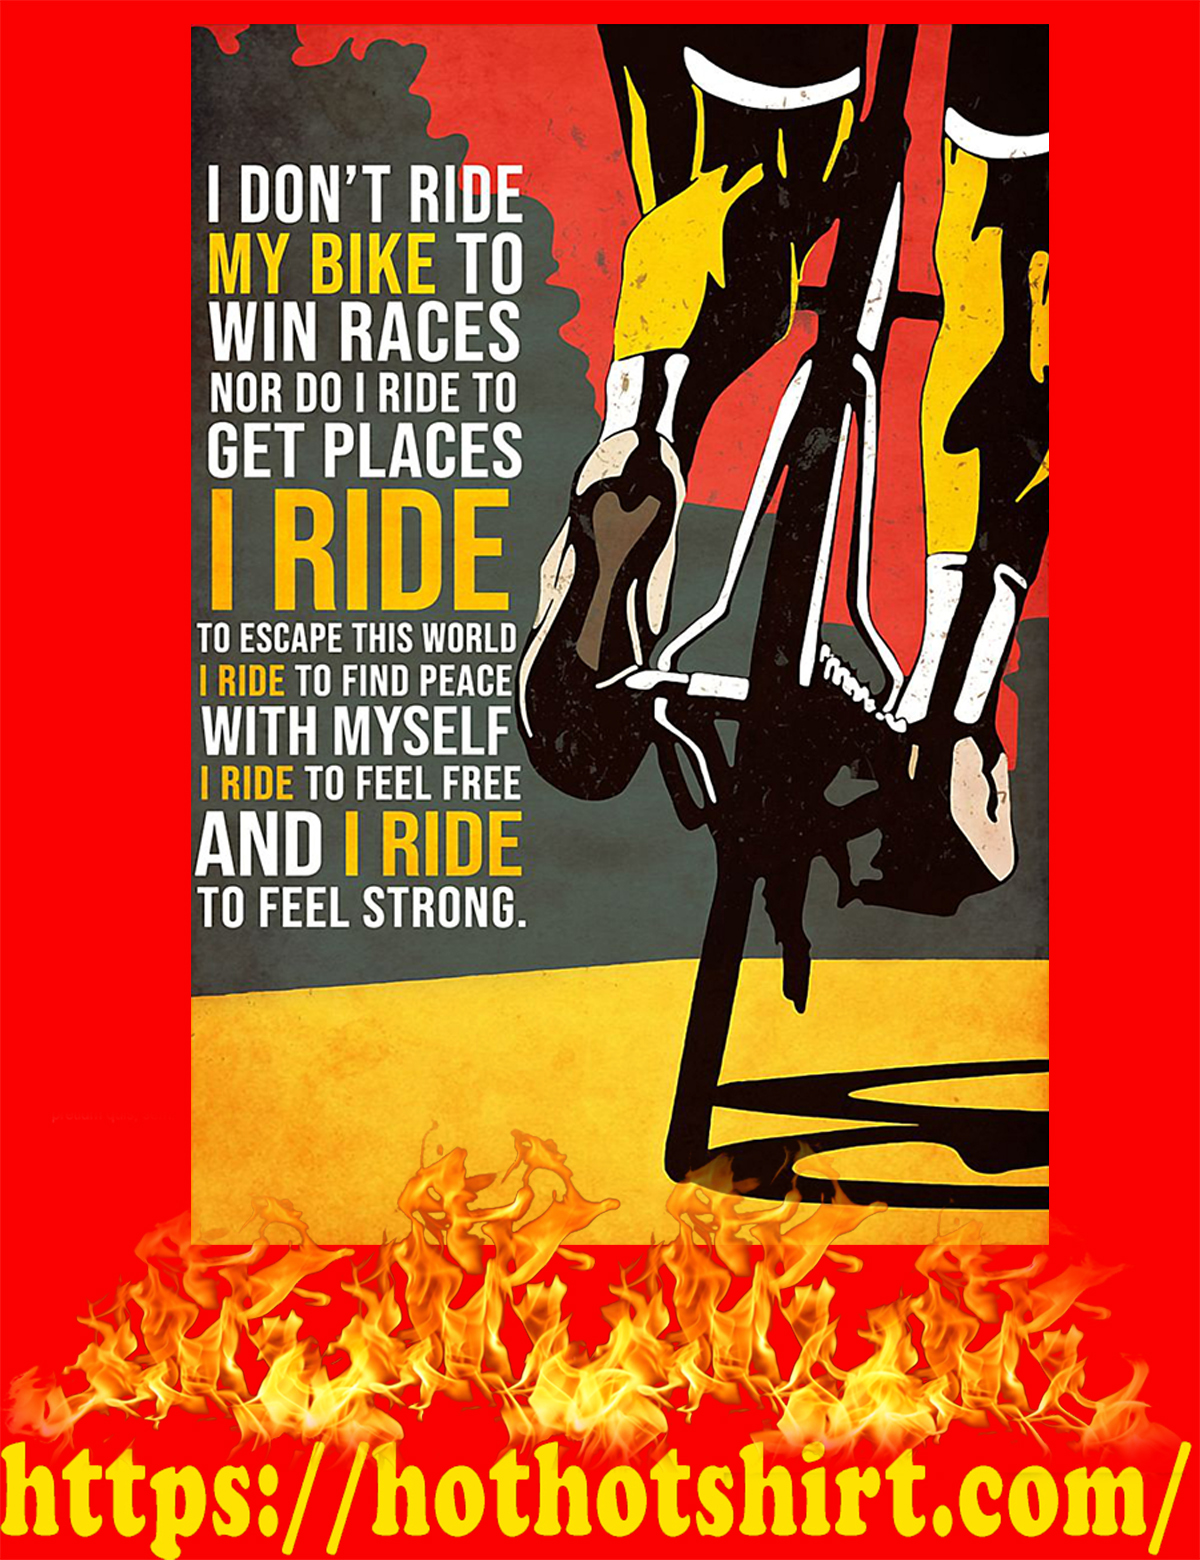 I don't ride my bike to win races poster - A4